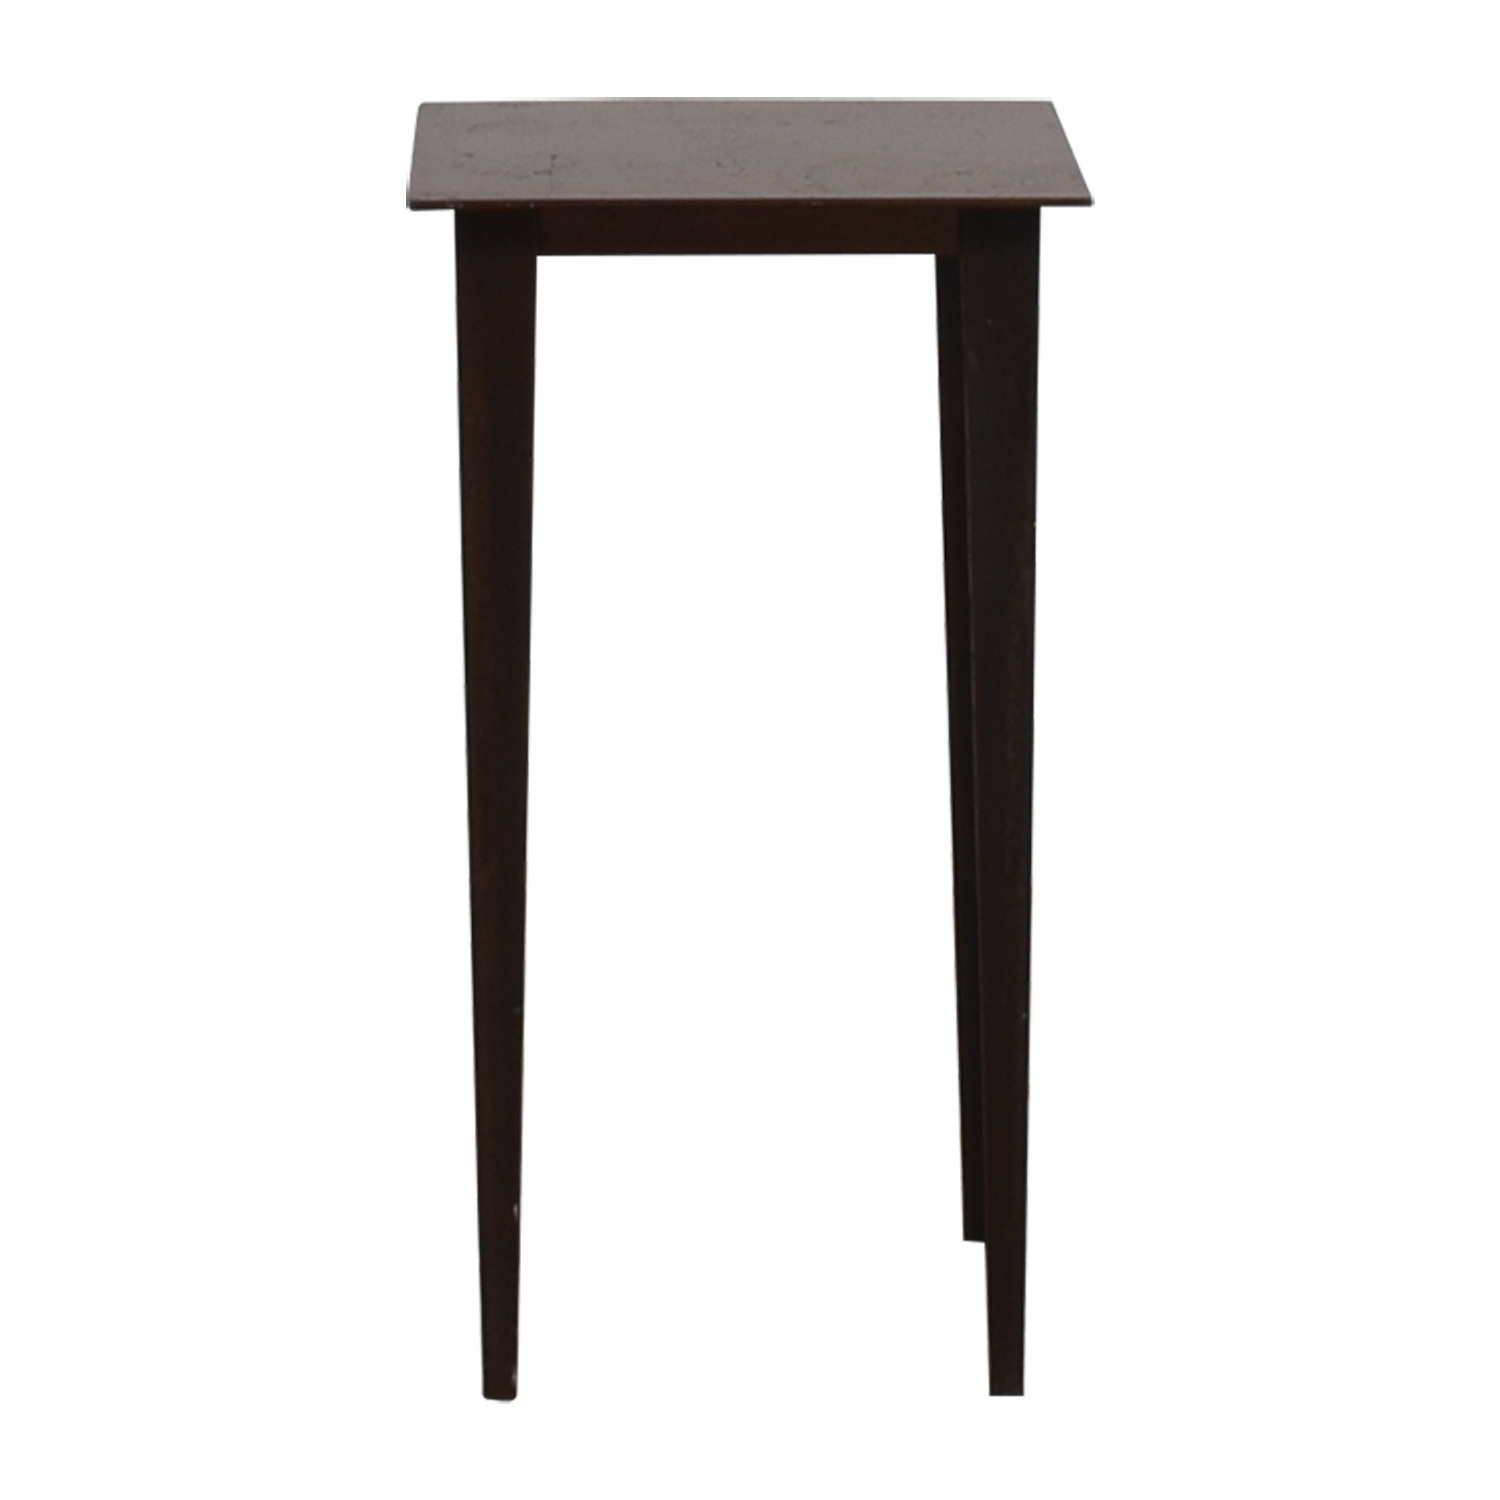 Crate & Barrel Crate & Barrel Wood and Metal Side Table coupon